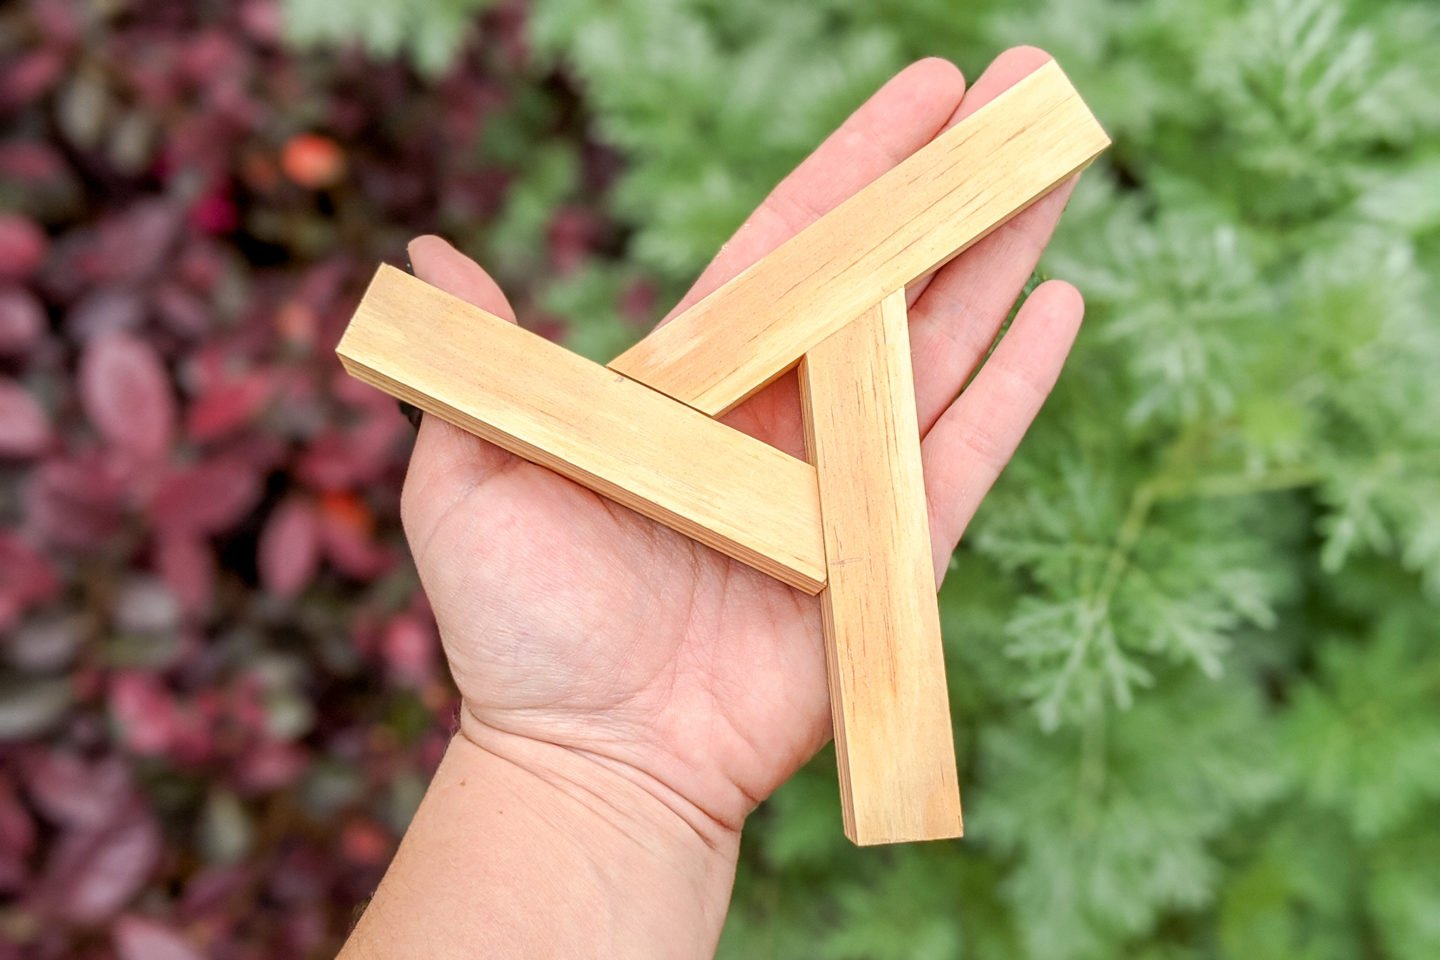 cut each bottom piece at 30 degrees to form an adjustable overlapping triangle shape